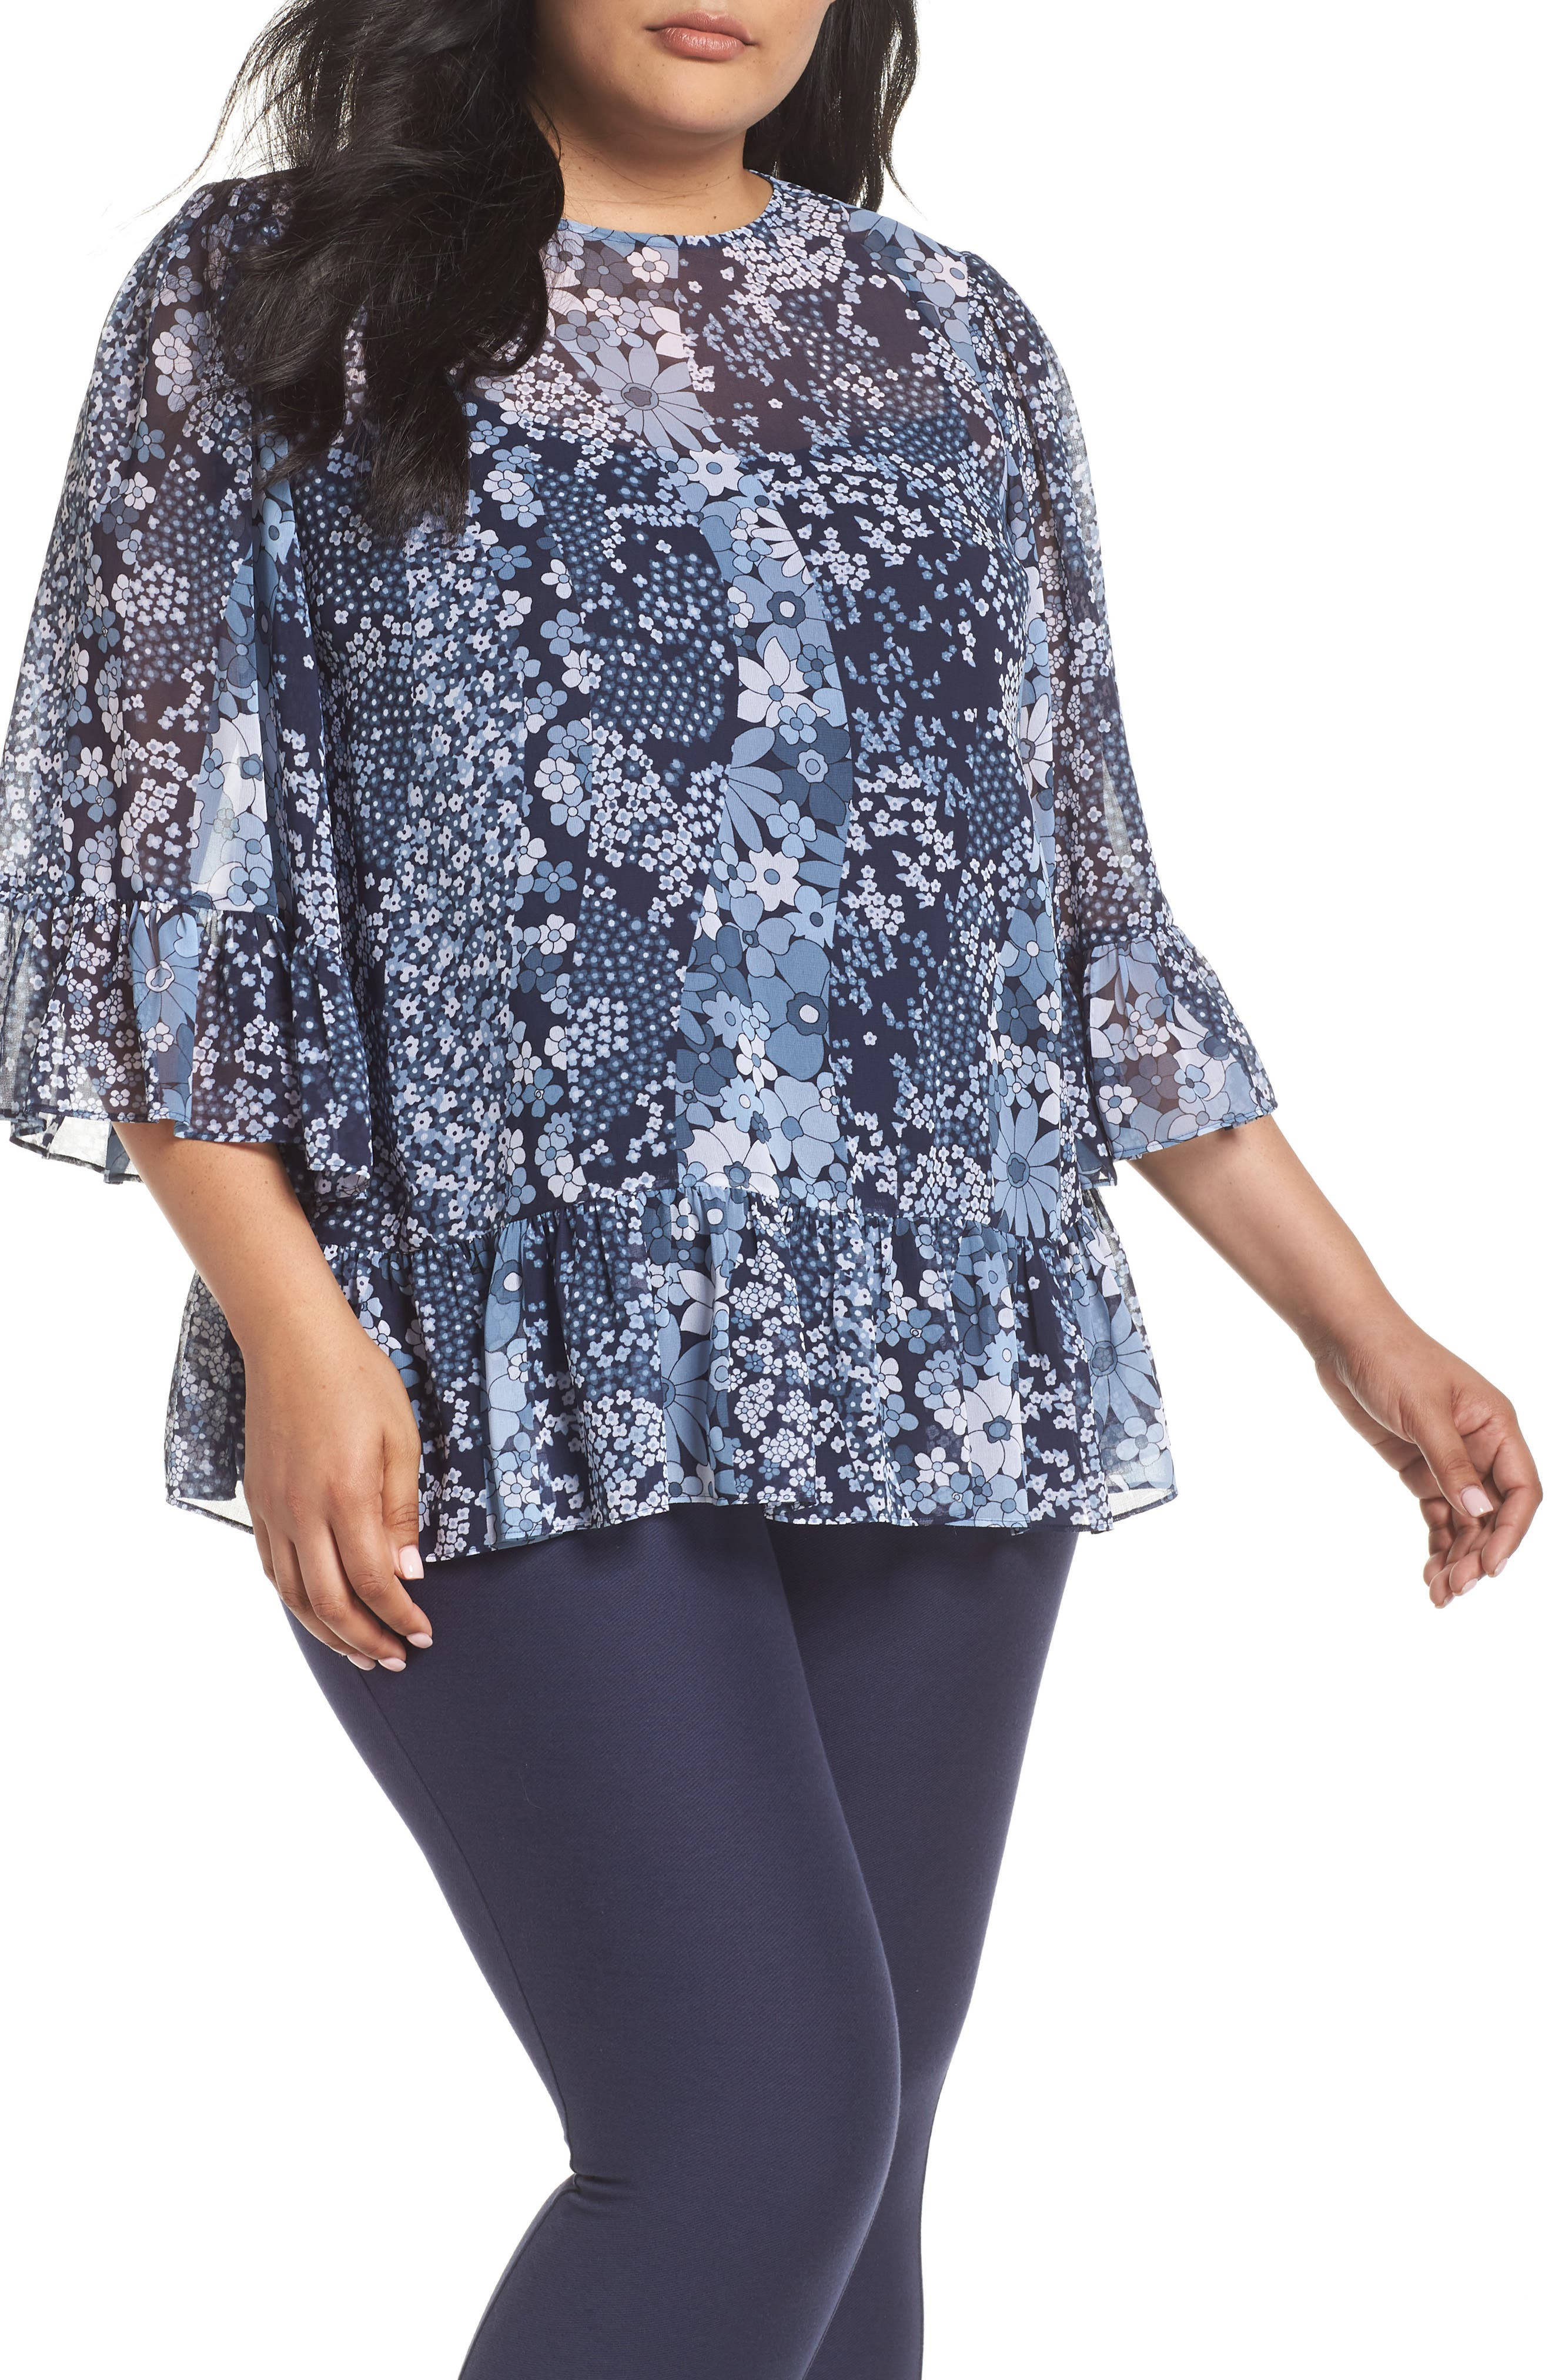 Patchwork Flowers Top,                         Main,                         color, True Navy/ Light Chambray